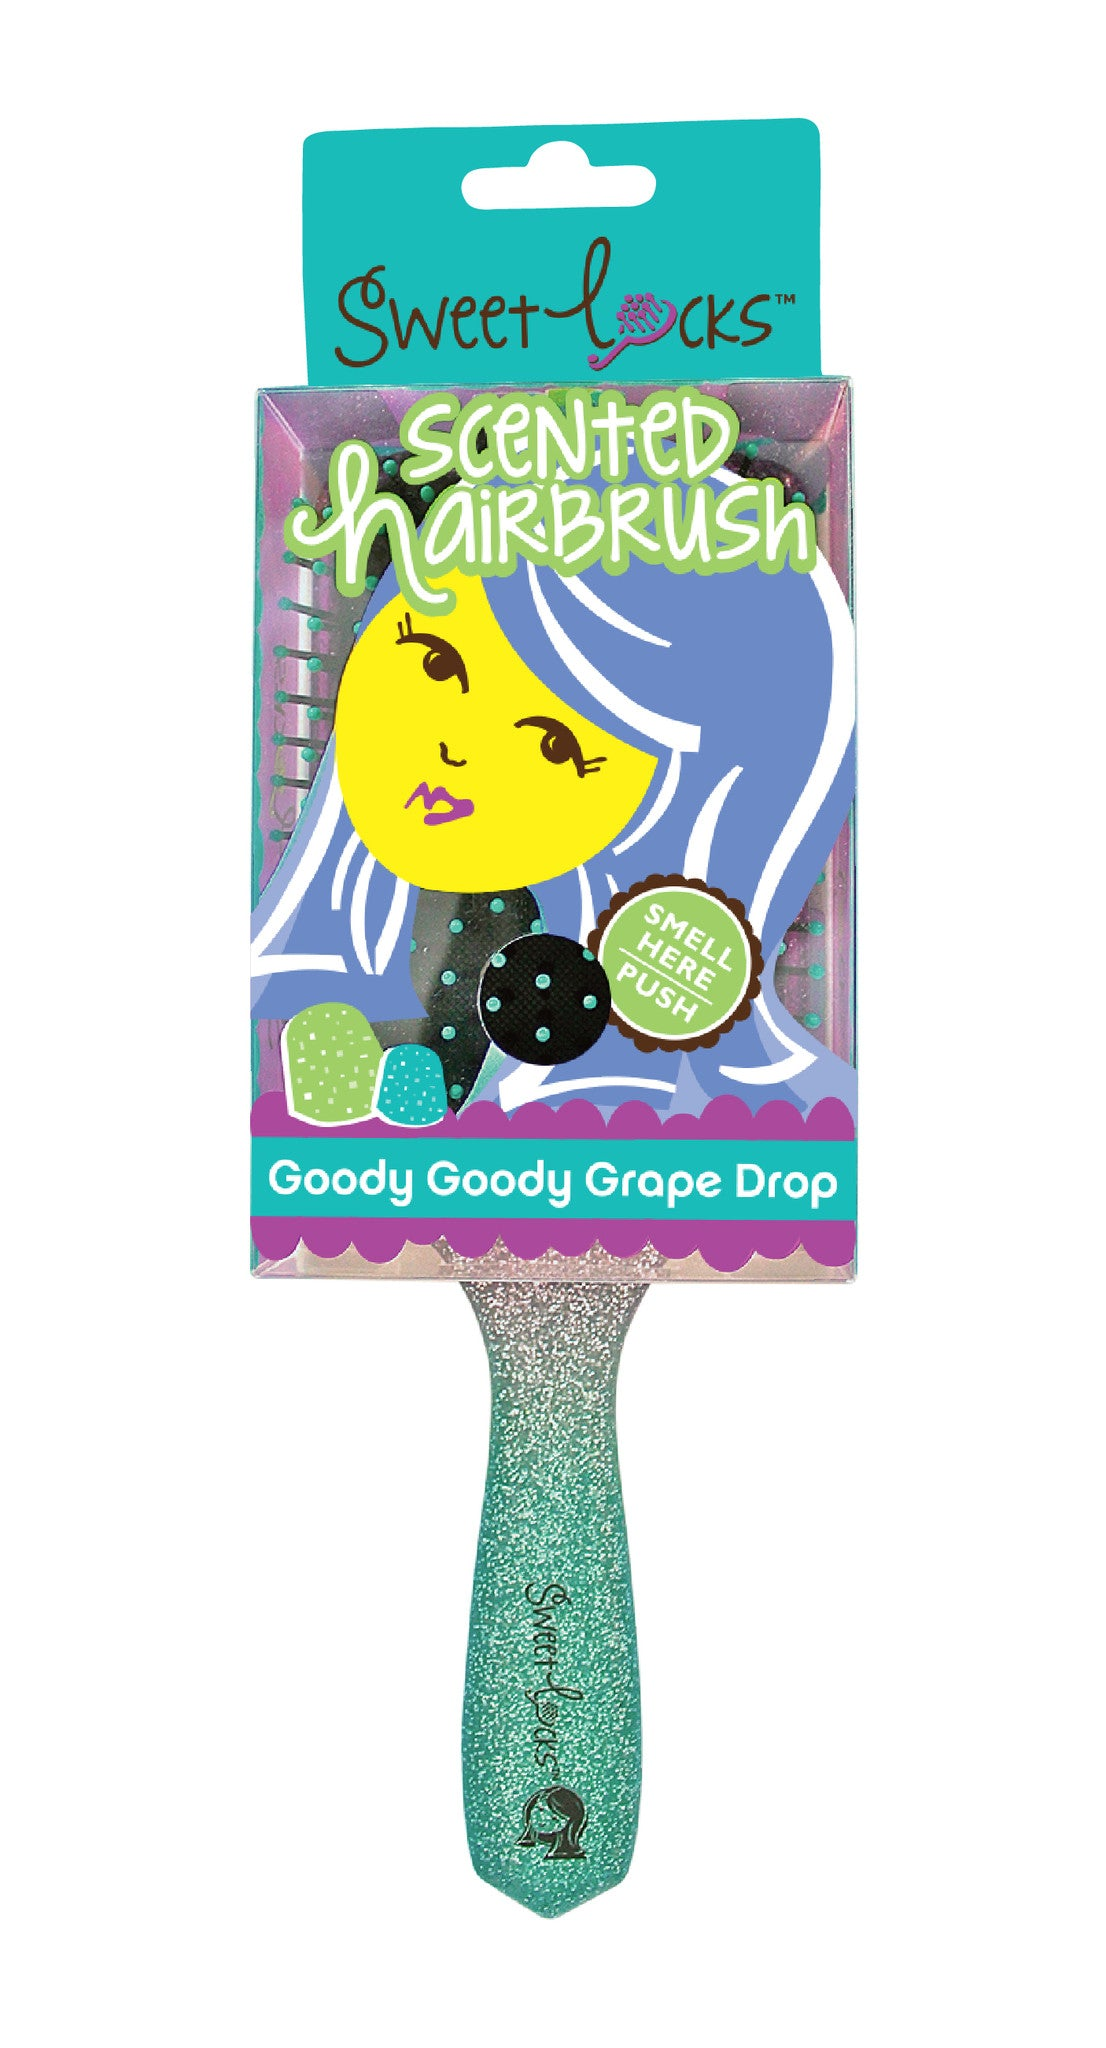 Goody Goody Grape Drop Scented Hairbrush